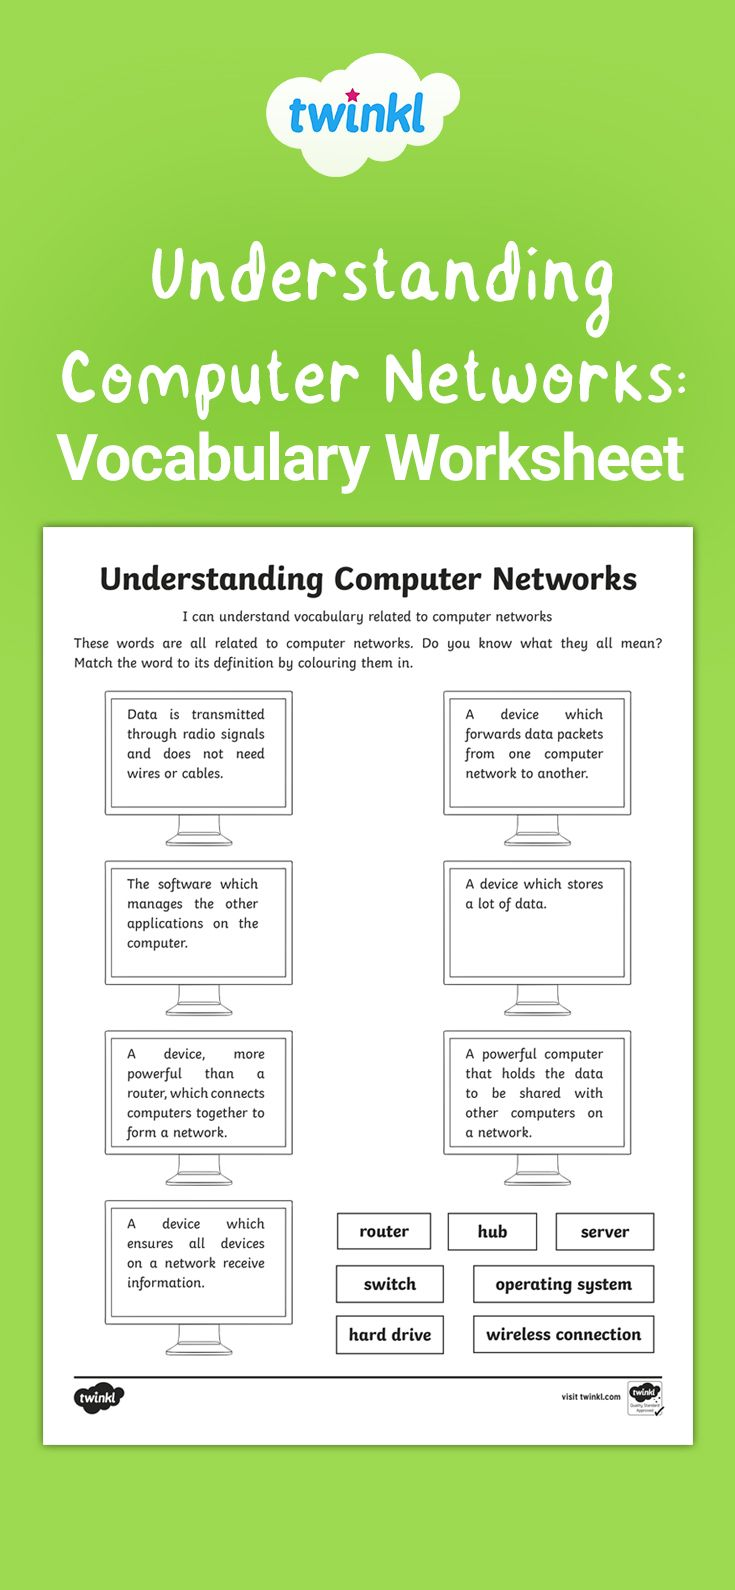 A useful worksheet for pupils to develop the vocabulary